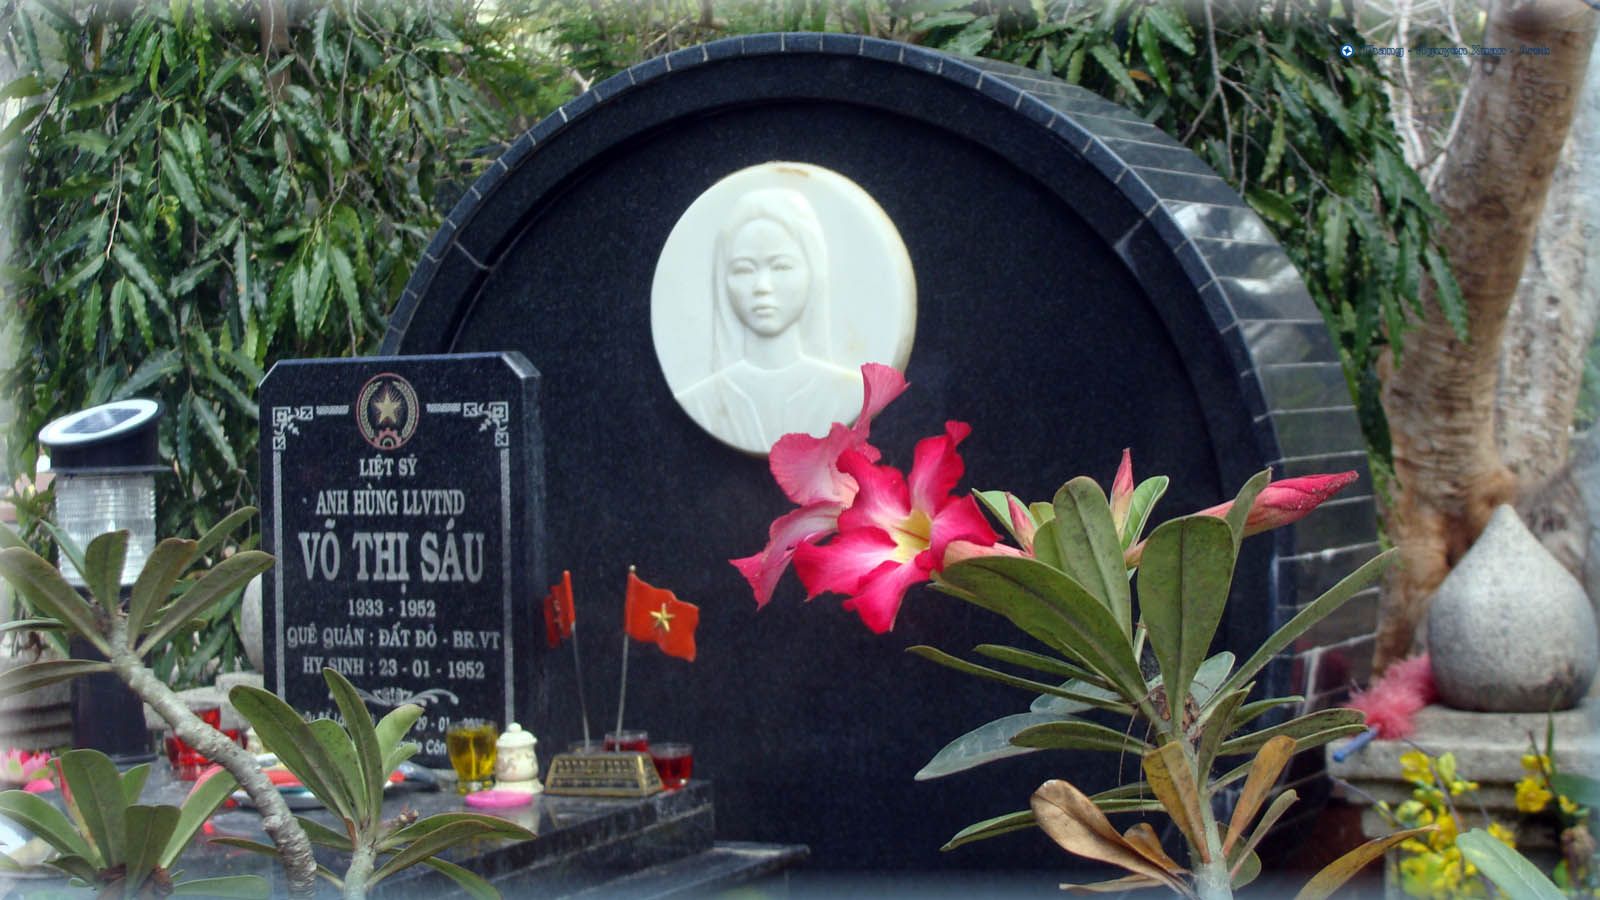 The grave of Vo Thi Sau at Hang Duong Cemetery - Photo: Internet